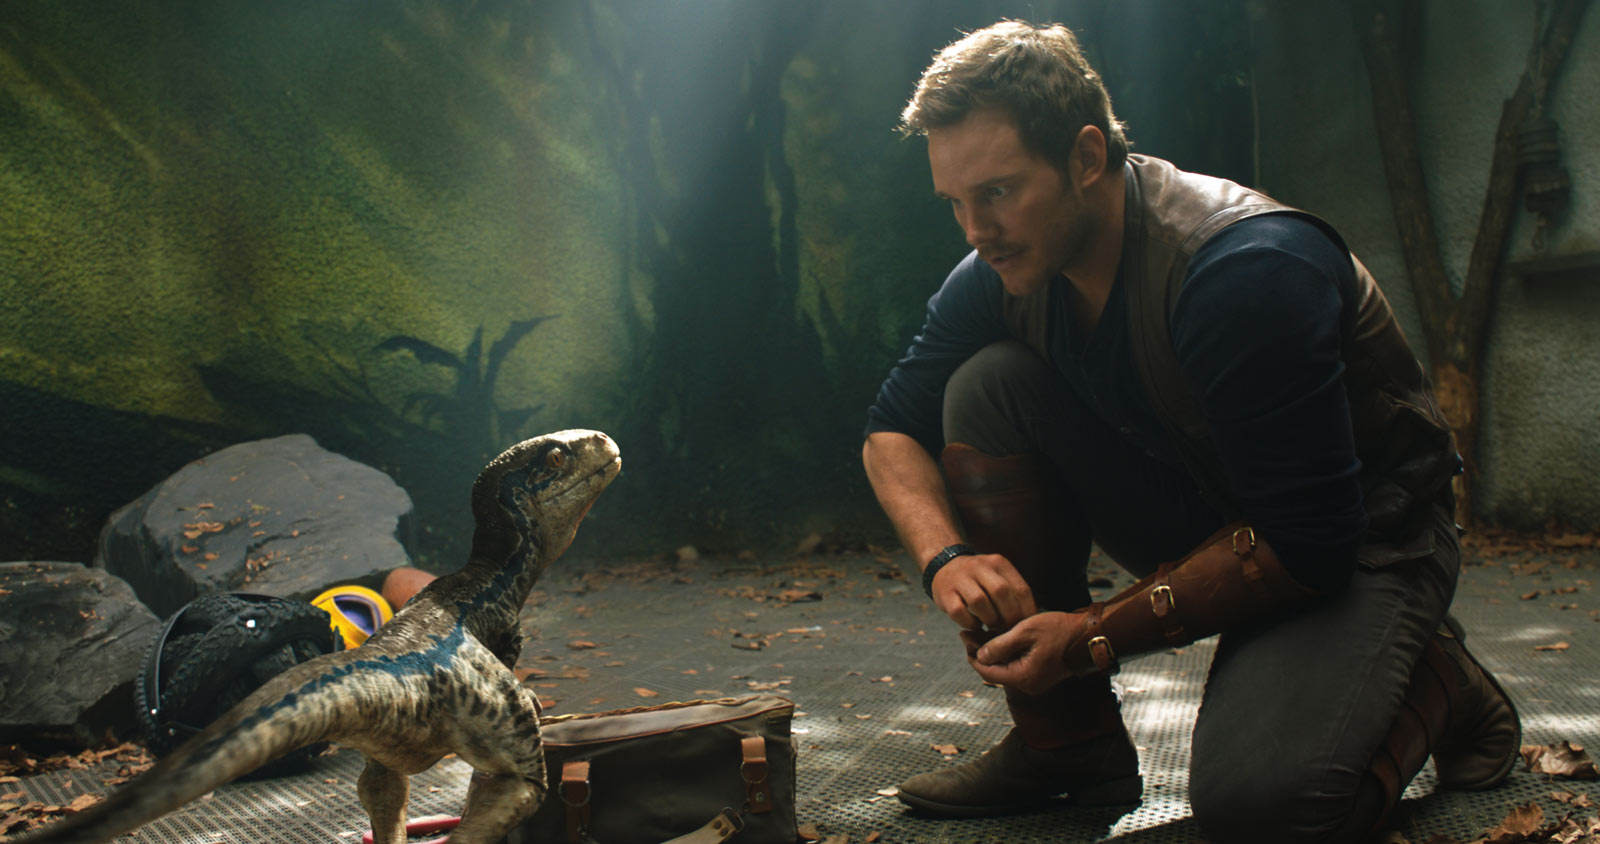 Chris Pratt in Jurassic World 2.